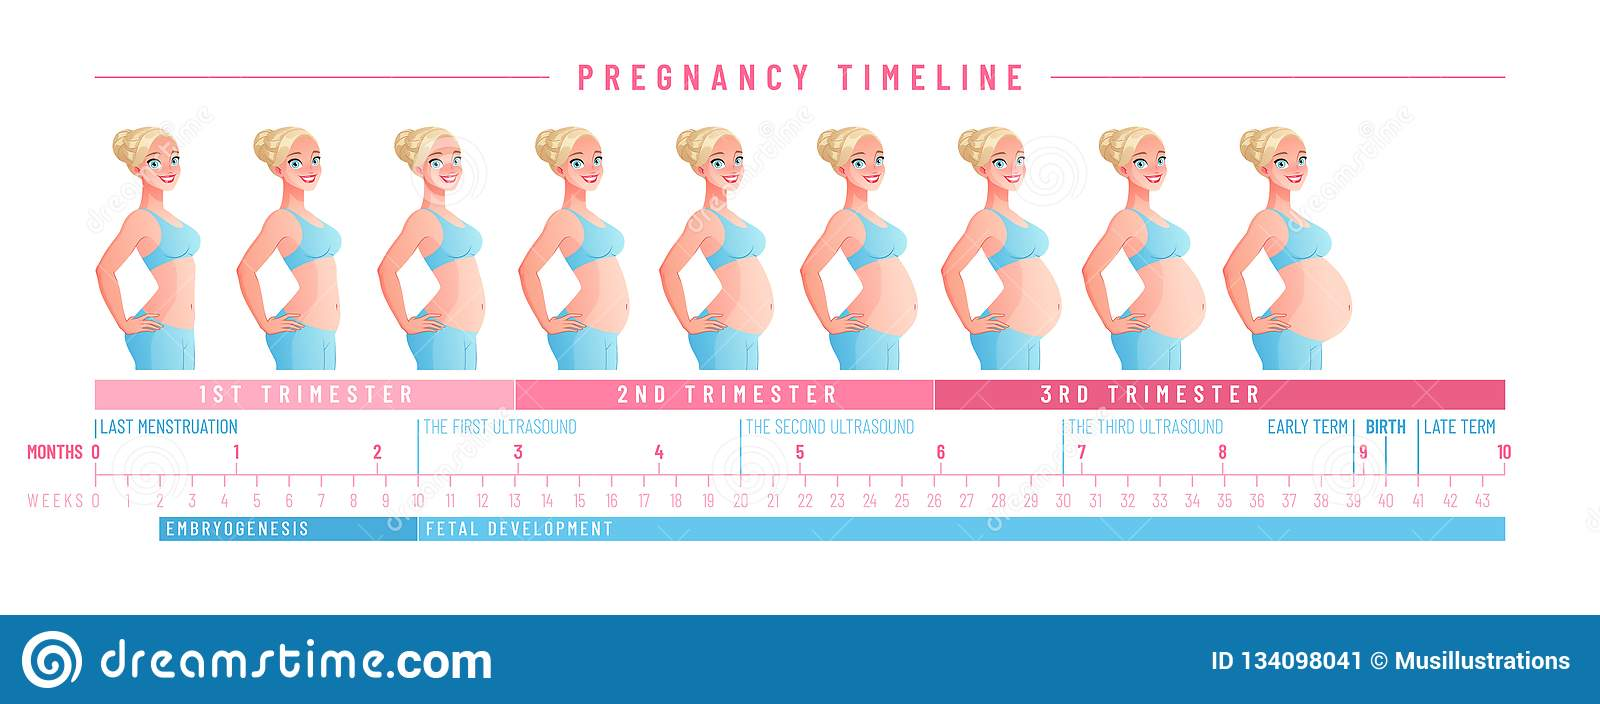 Pregnancy Timeline By Weeks  Isolated Vector Illustration